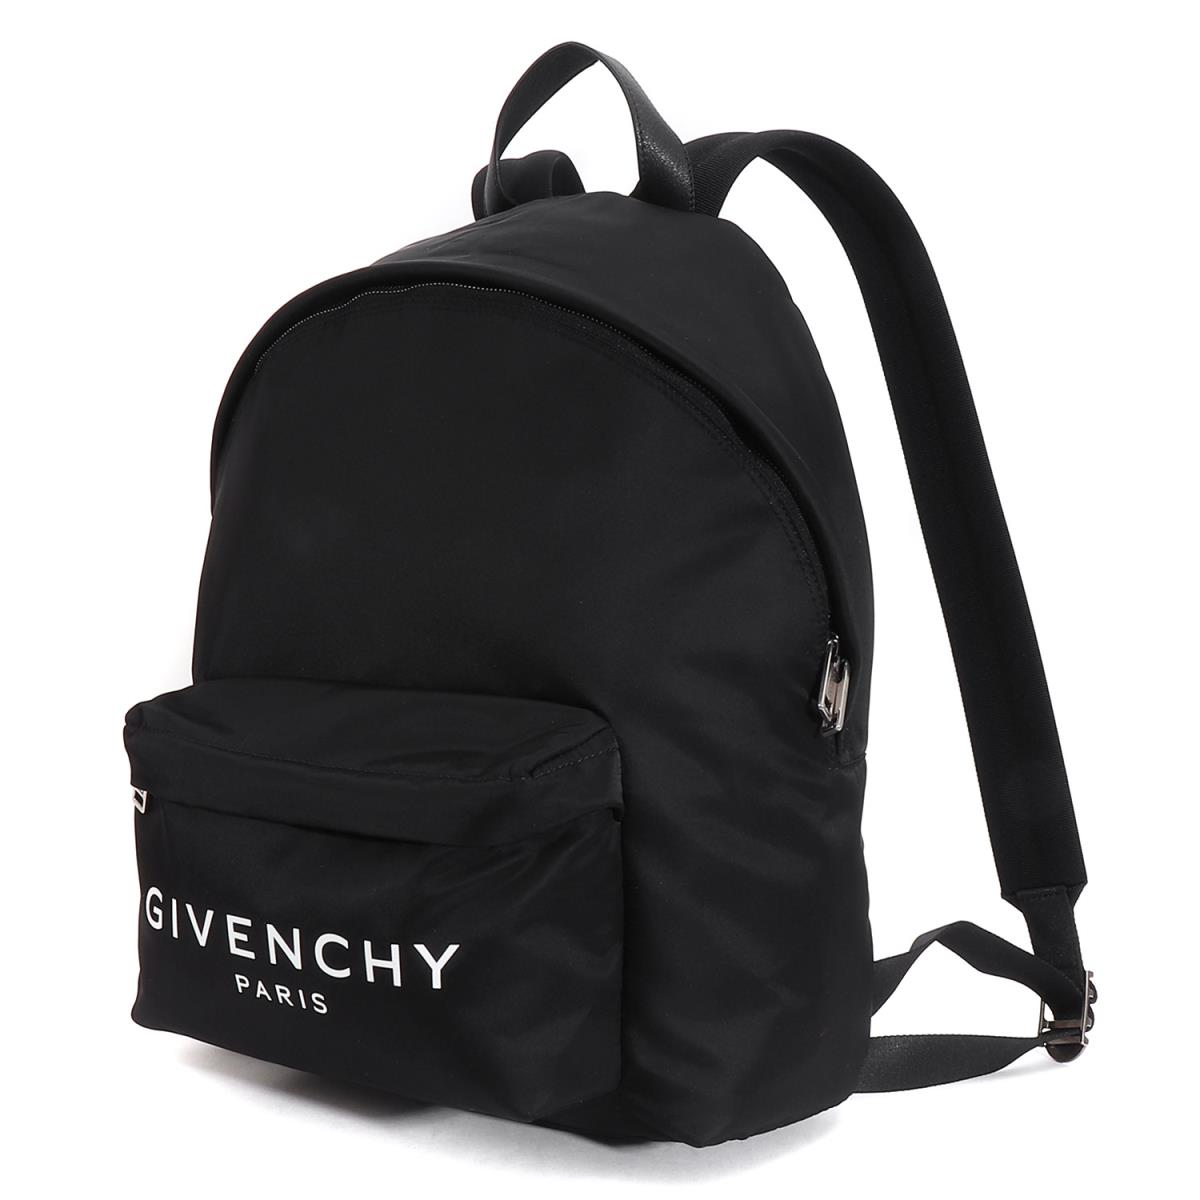 GIVENCHY (ジバンシィ) 18A W brand logo nylon backpack GIVENCHY PARIS BACKPACK  black 7b59fcba8d0ca